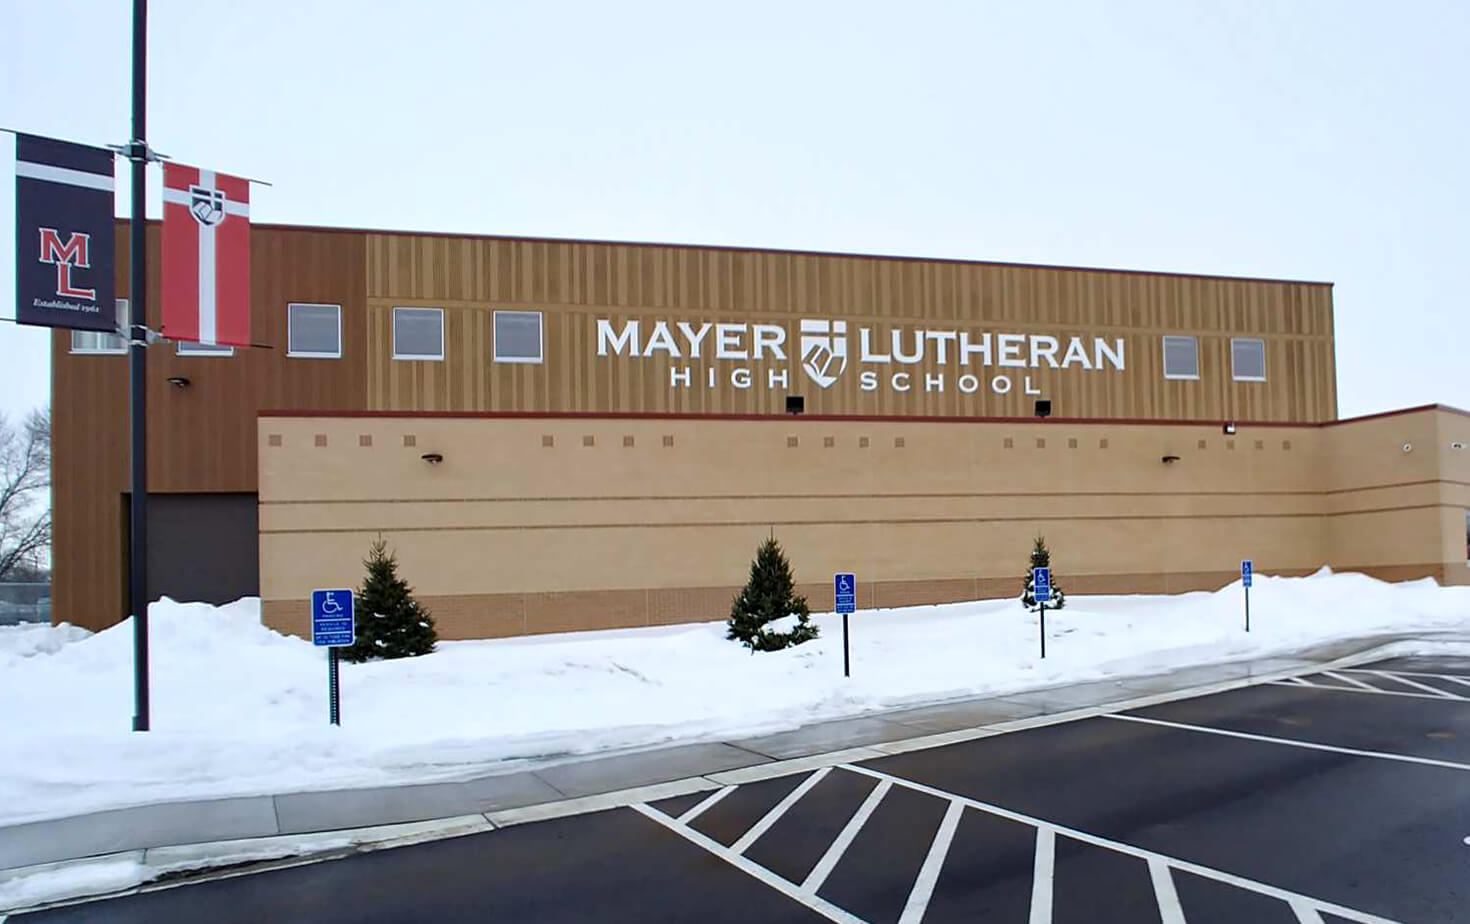 Mayer Lutheran High School Dimensional Letters on Building